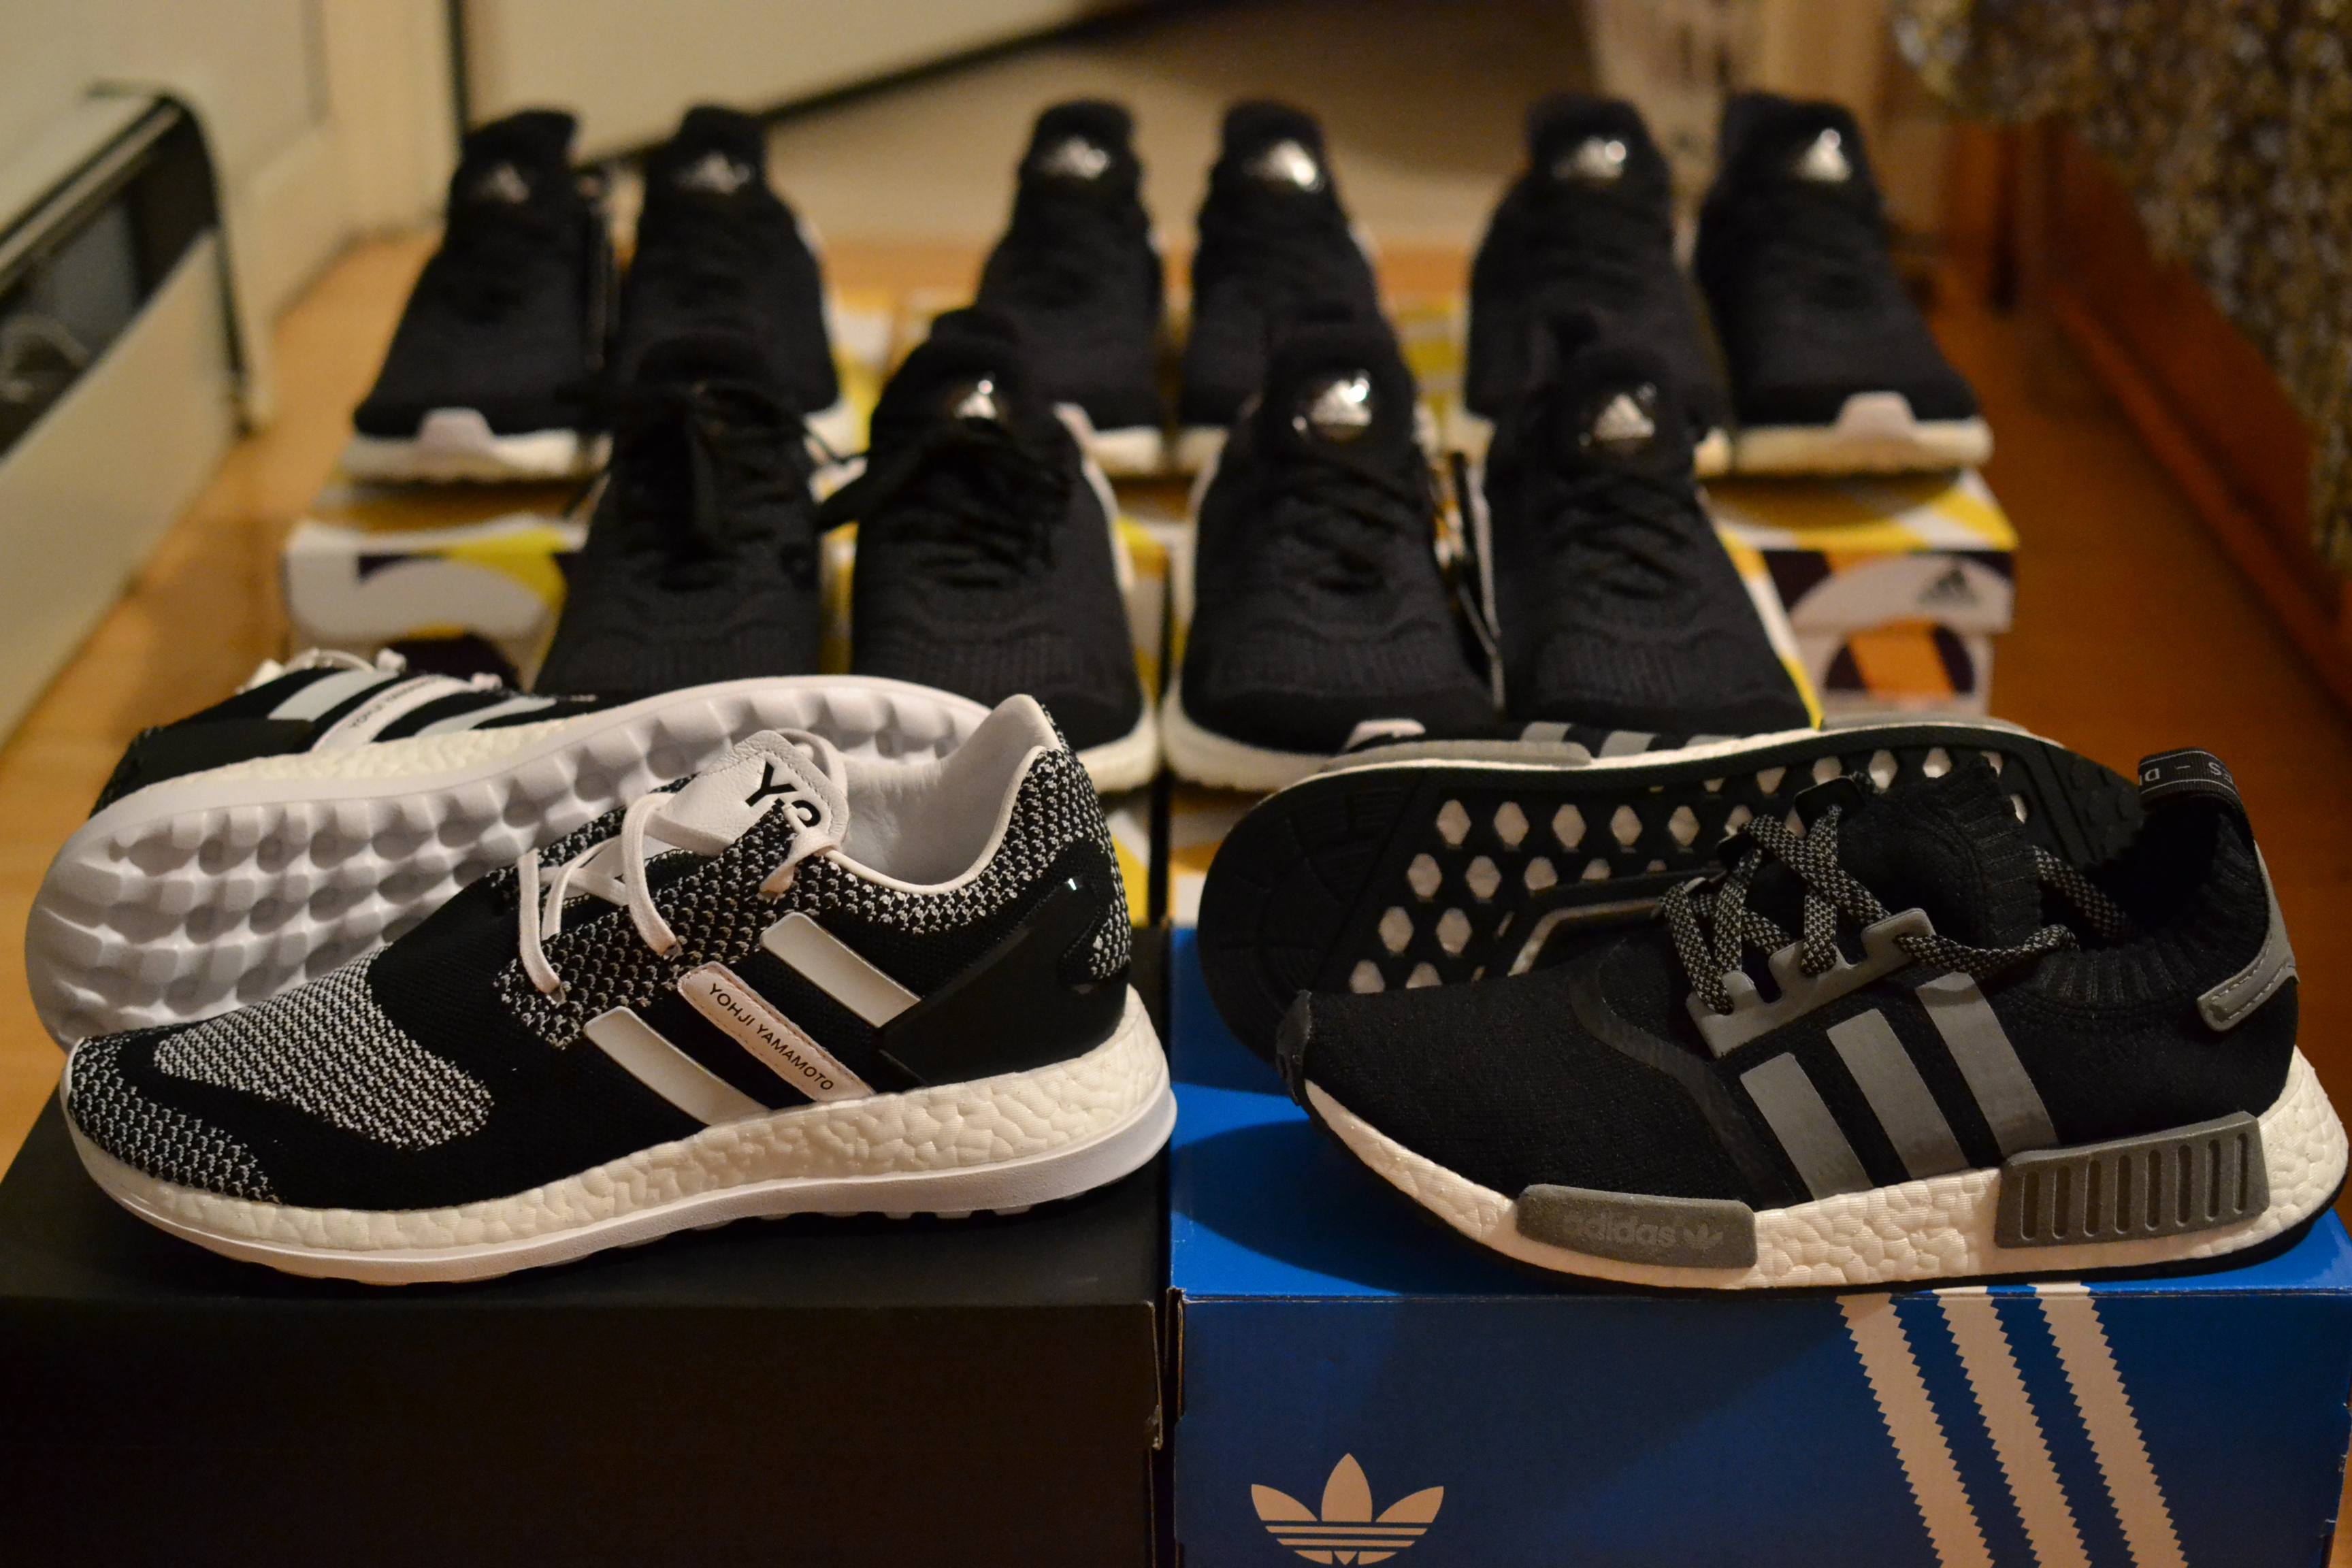 c37006880d7d Today s boost pickups. Adidas Y-3 Pure Boost ZG Knit   NMD Runner PK ...